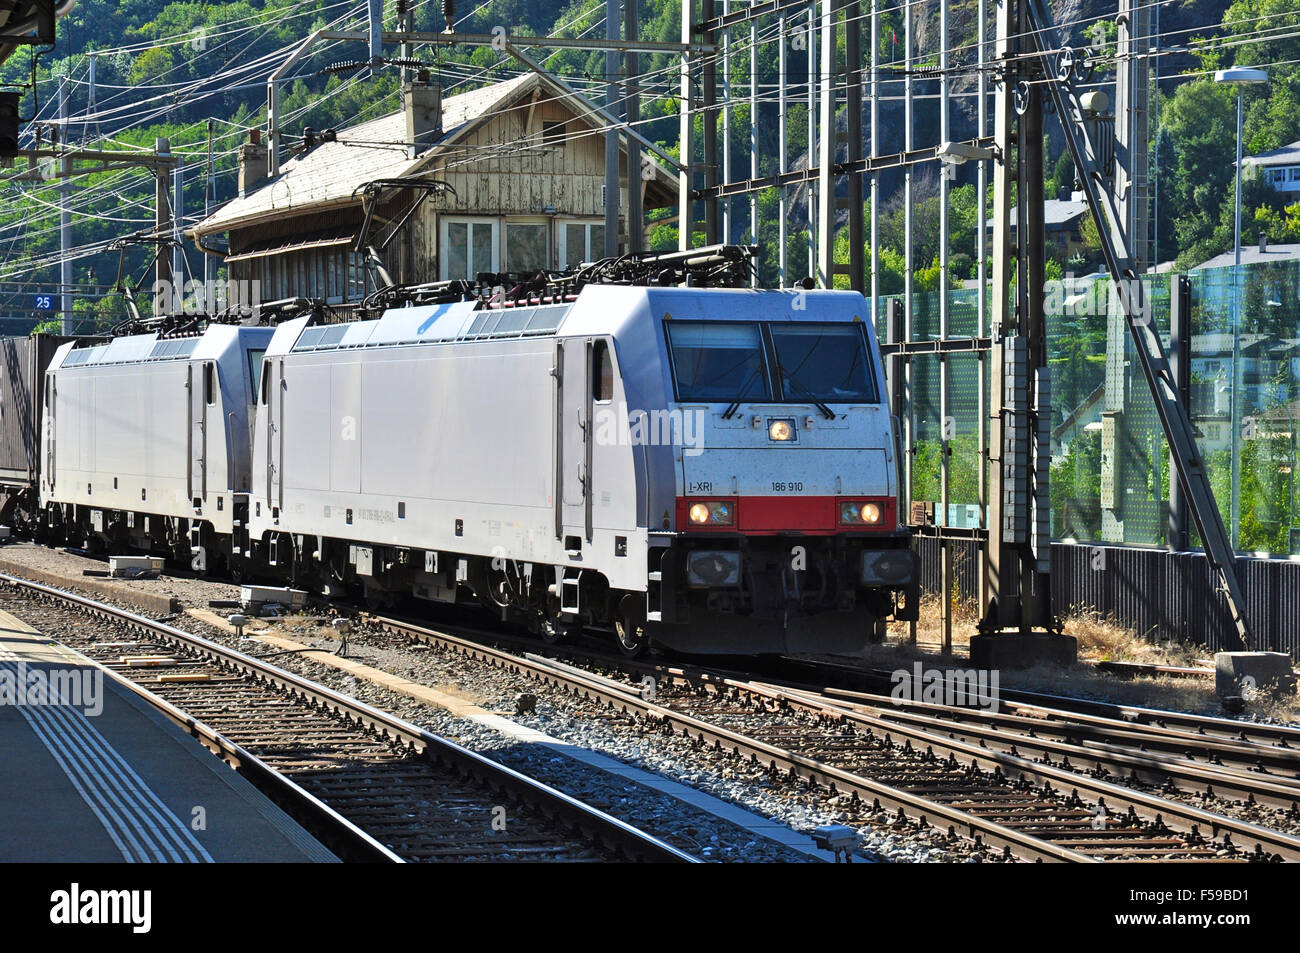 Class 186 electric locomotives double head a freight through Brig station headed by 186910, Brig, Valais, Switzerland Stock Photo